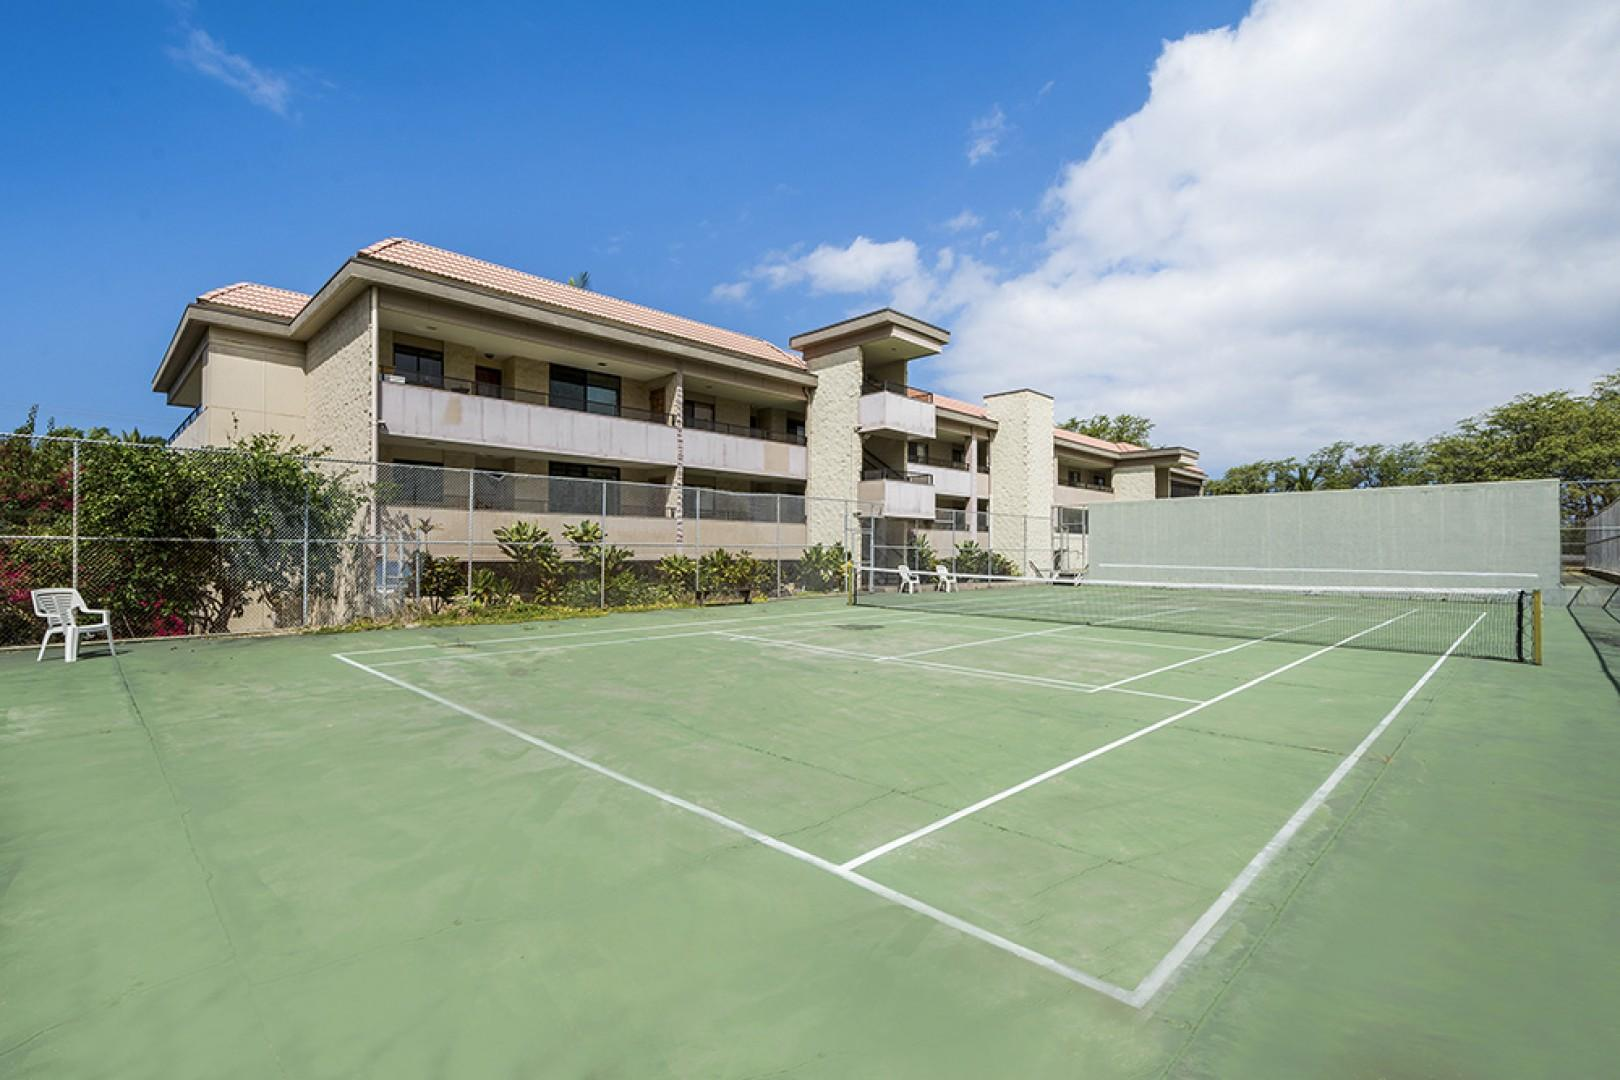 Complex tennis courts for your enjoyment!